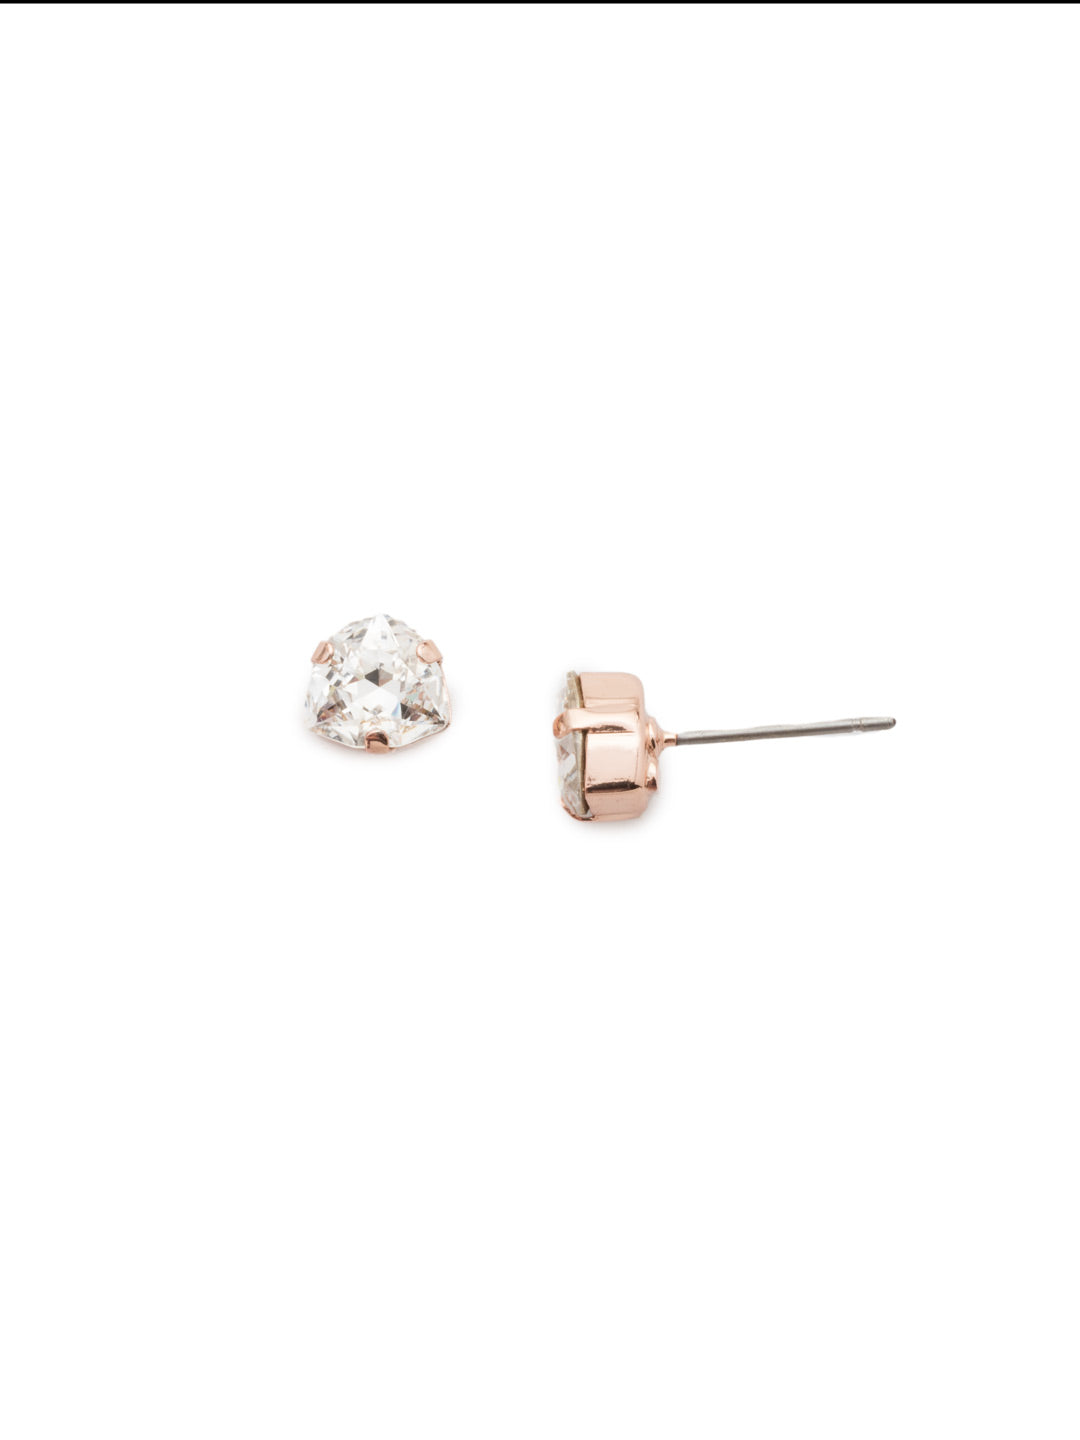 Sedge Stud Earrings - EDX1RGROG